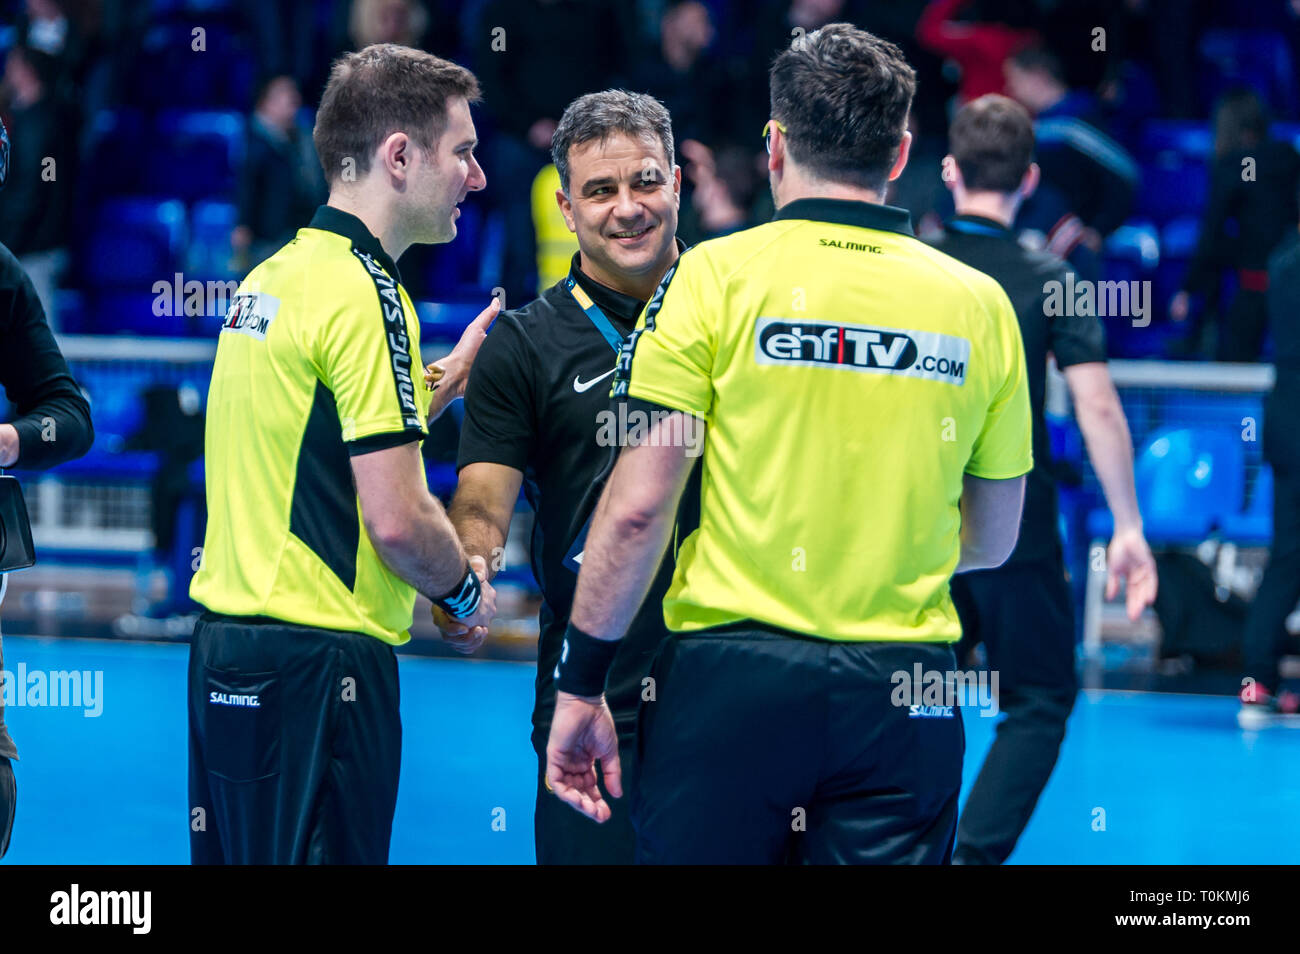 Ambros Martin in talking with referees after match against Buducnost in Champions League match - Stock Image